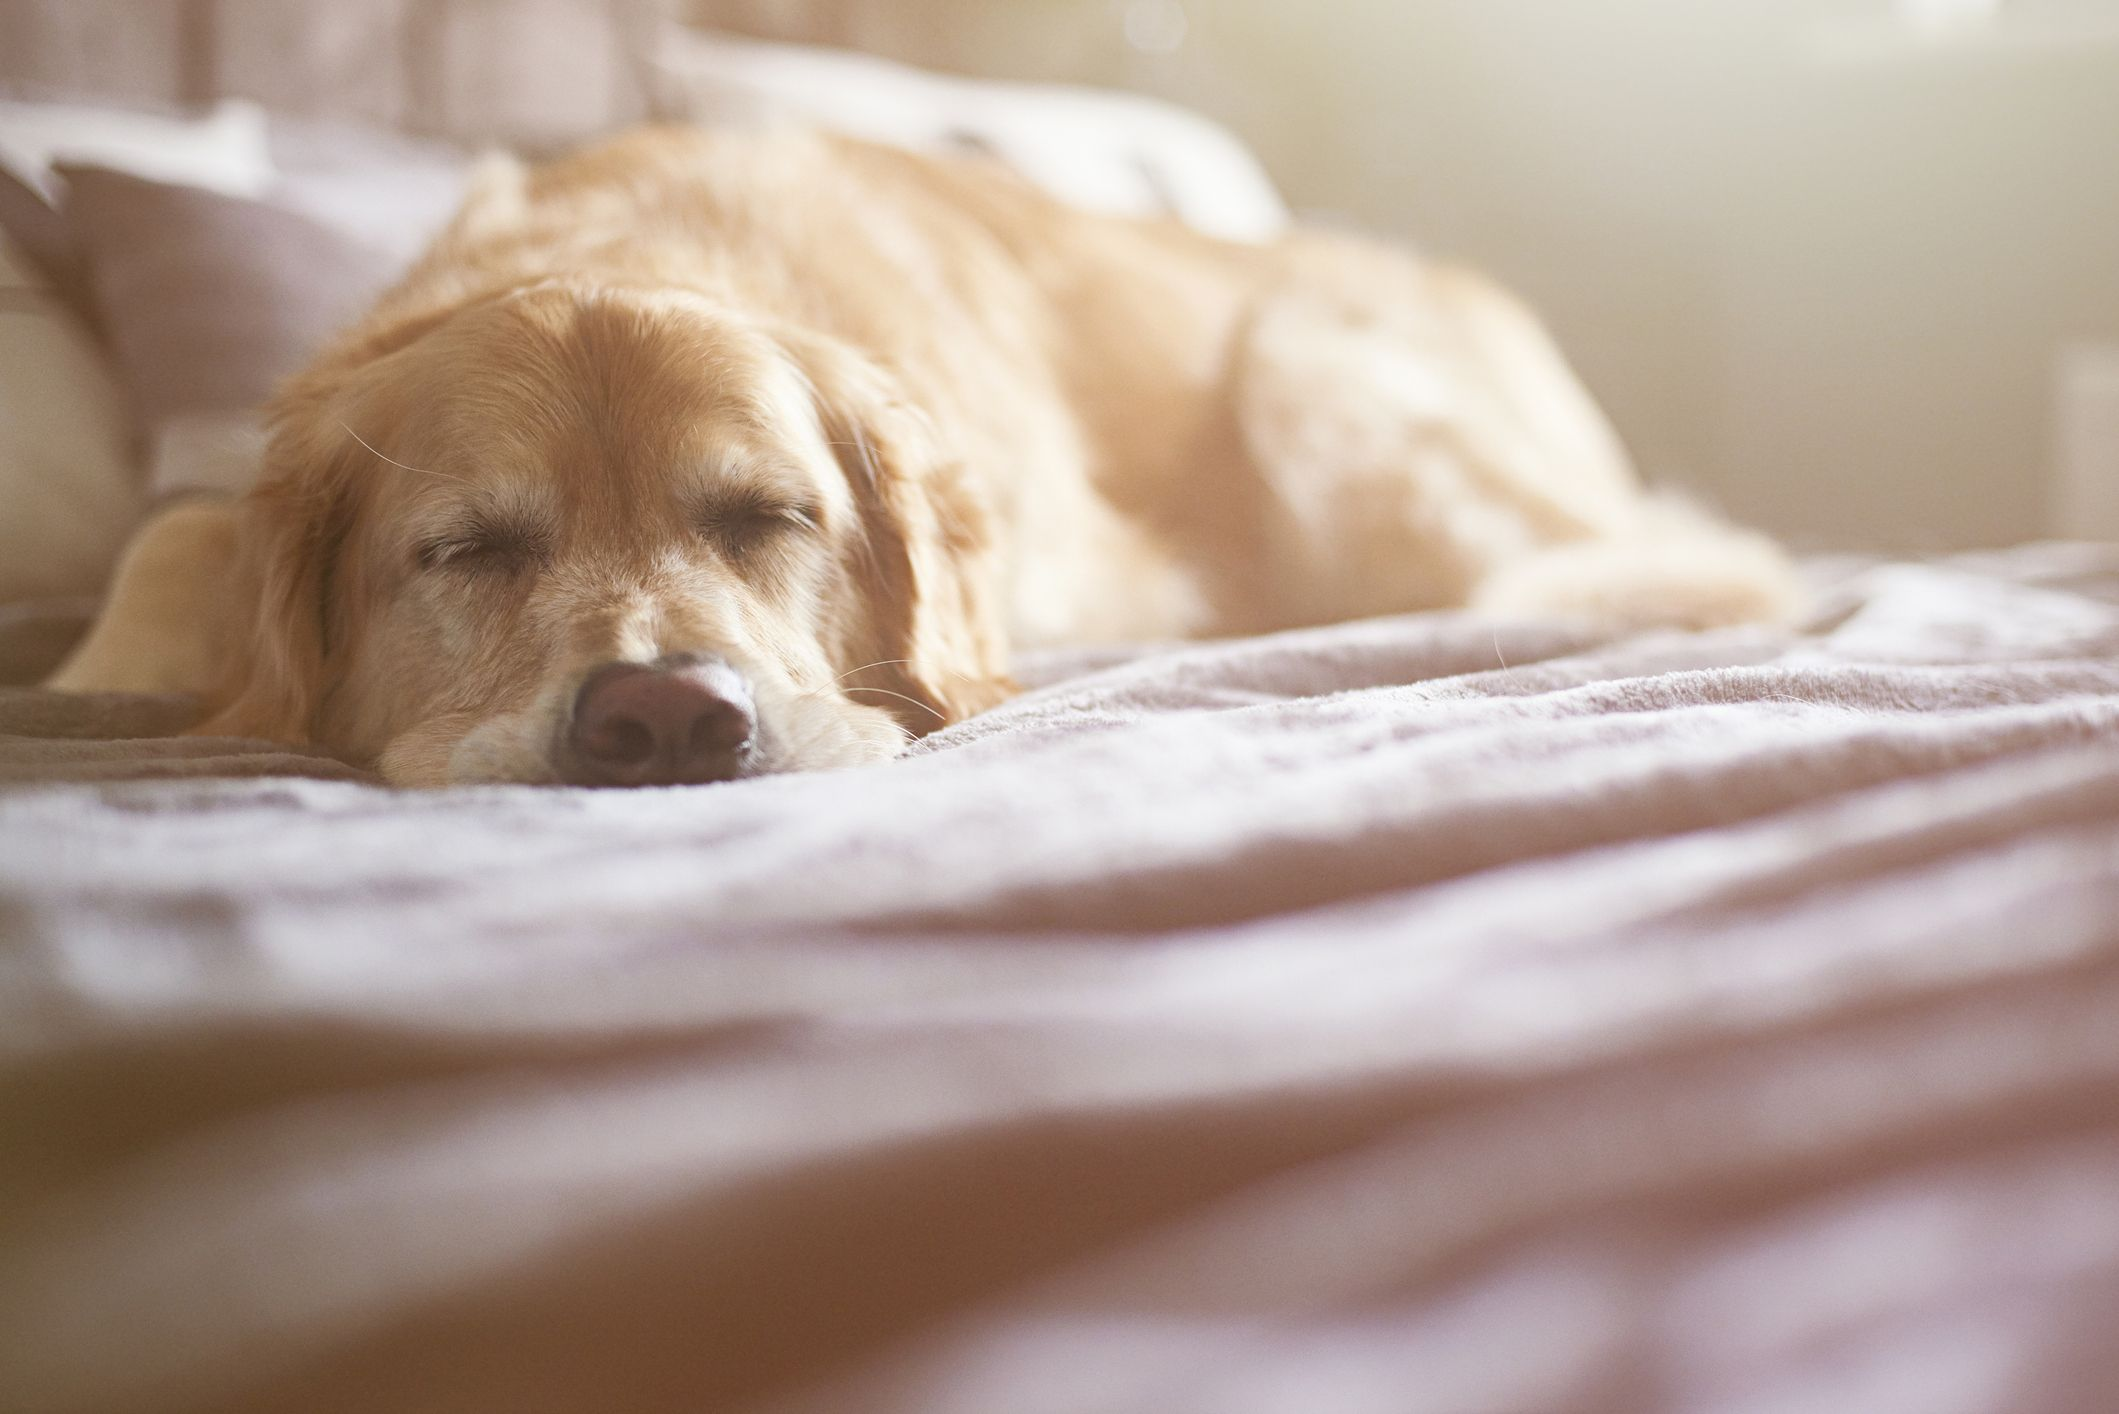 Sleeping with your dog in the room can improve your health, new study finds